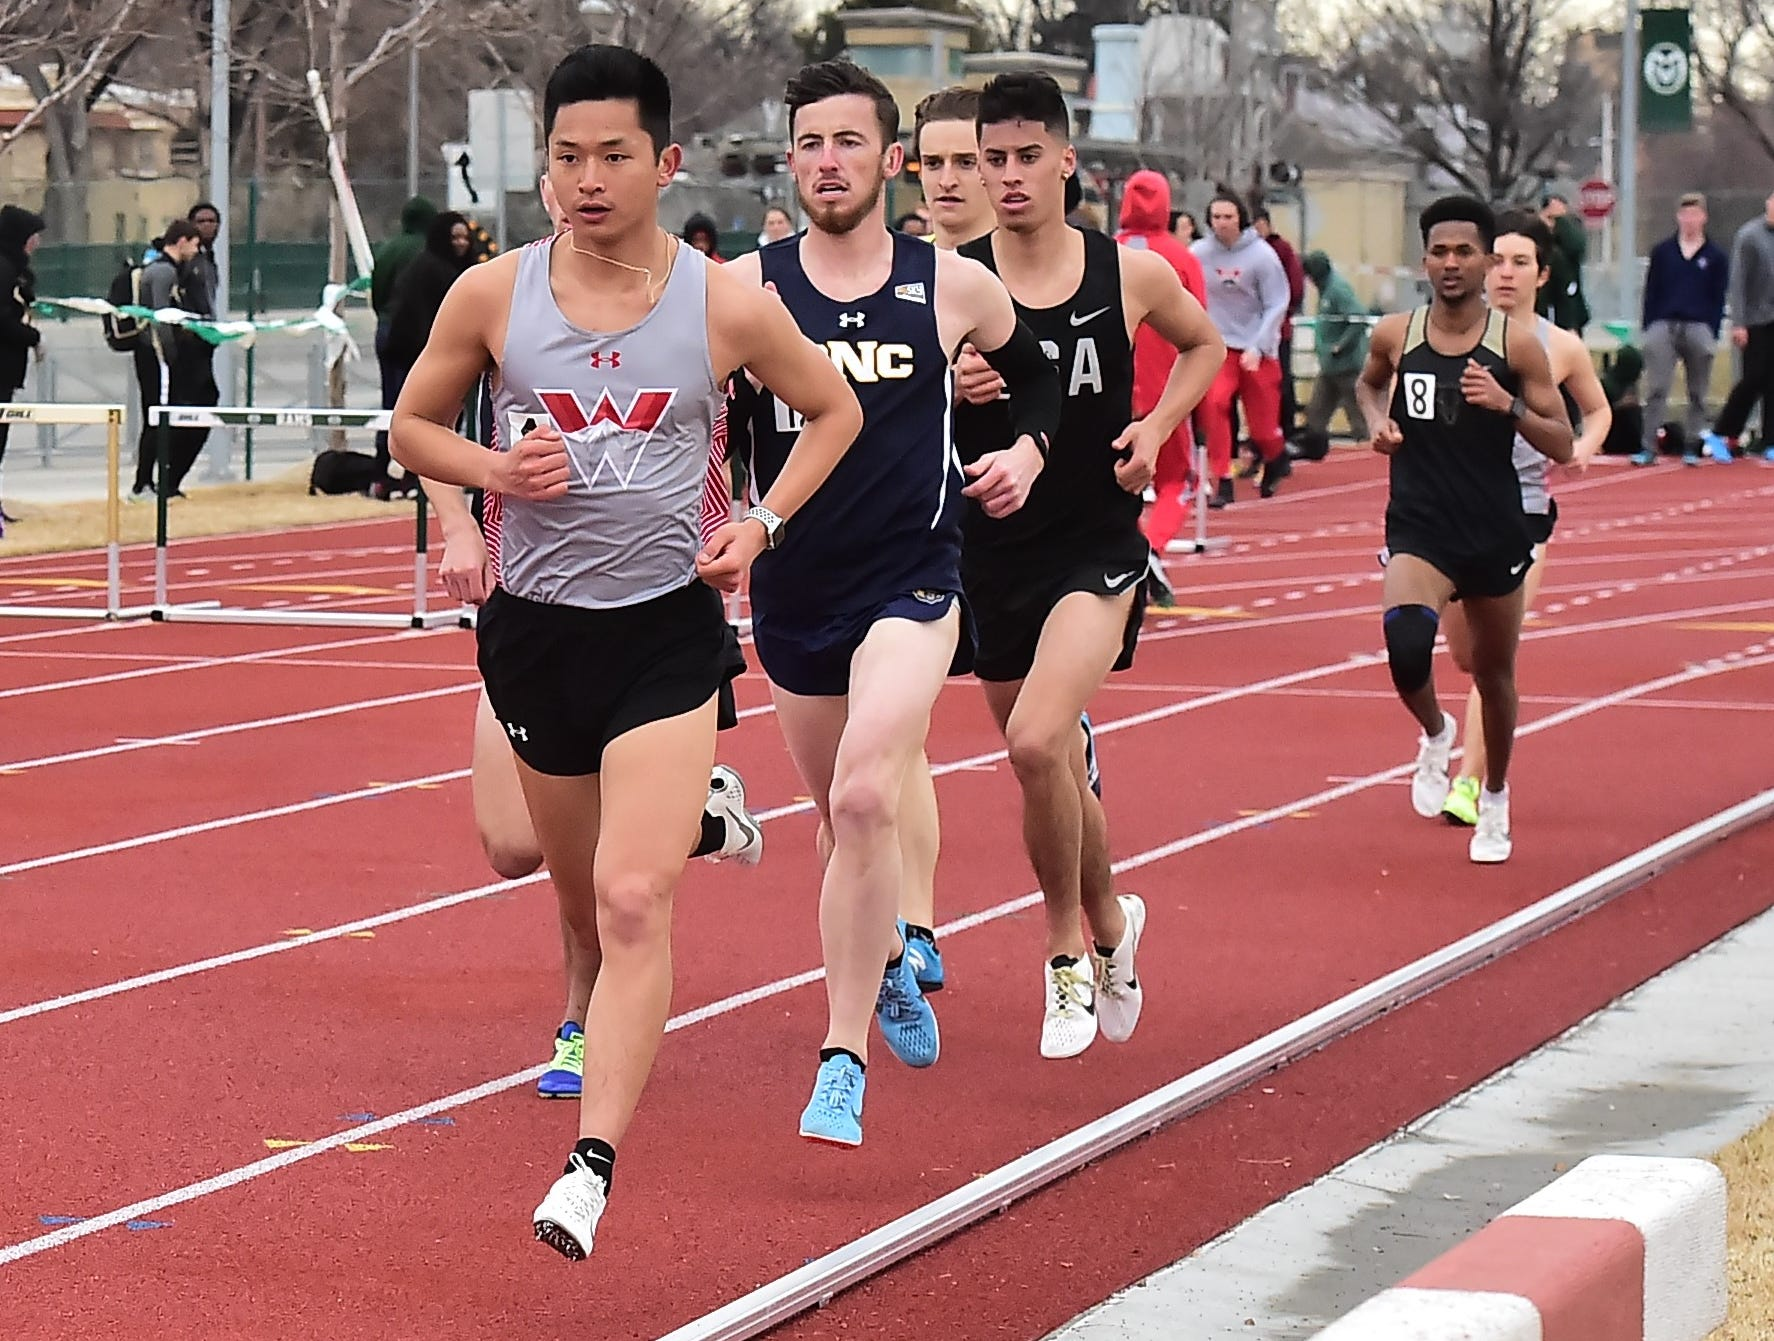 Western Colorado's Henry Briggs, a former Fort Collins High School athlete, leads runners through the early stages in the second heat of the men's 1,500-meter run Saturday, March 23, 2019, at CSU's Fum McGraw Open at Jack Christiansen Track.